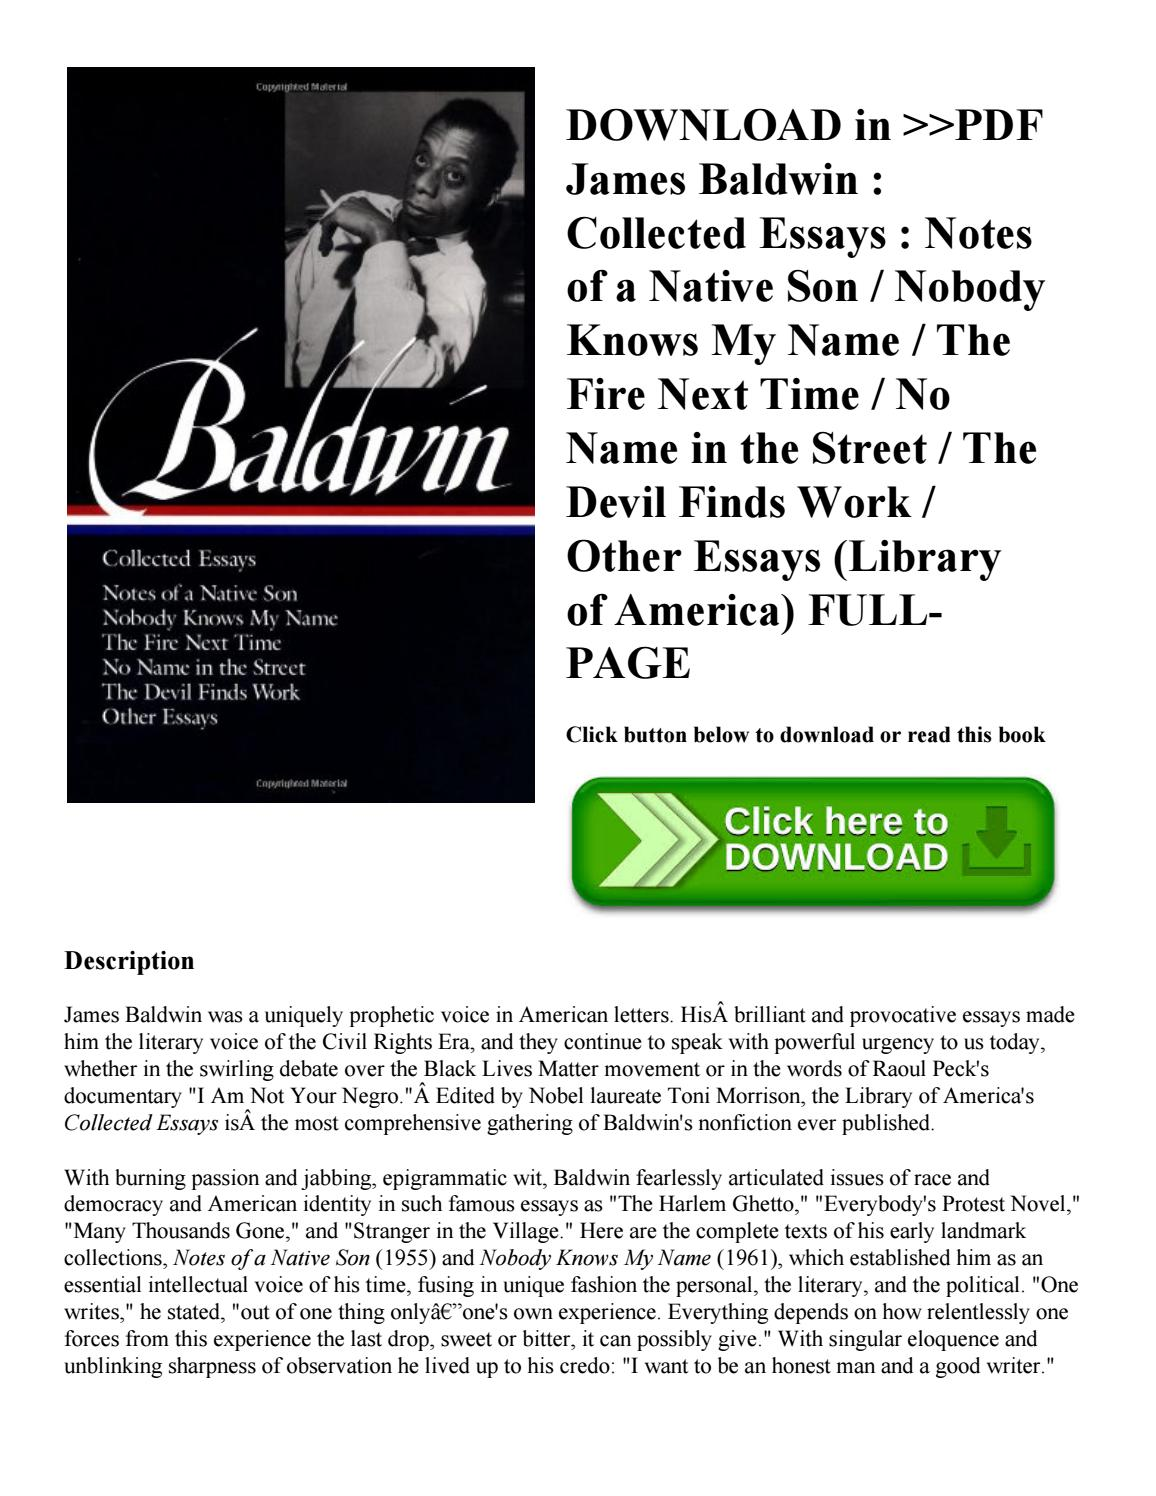 001 James Baldwin Essays Pdf Page 1 Essay Imposing Full